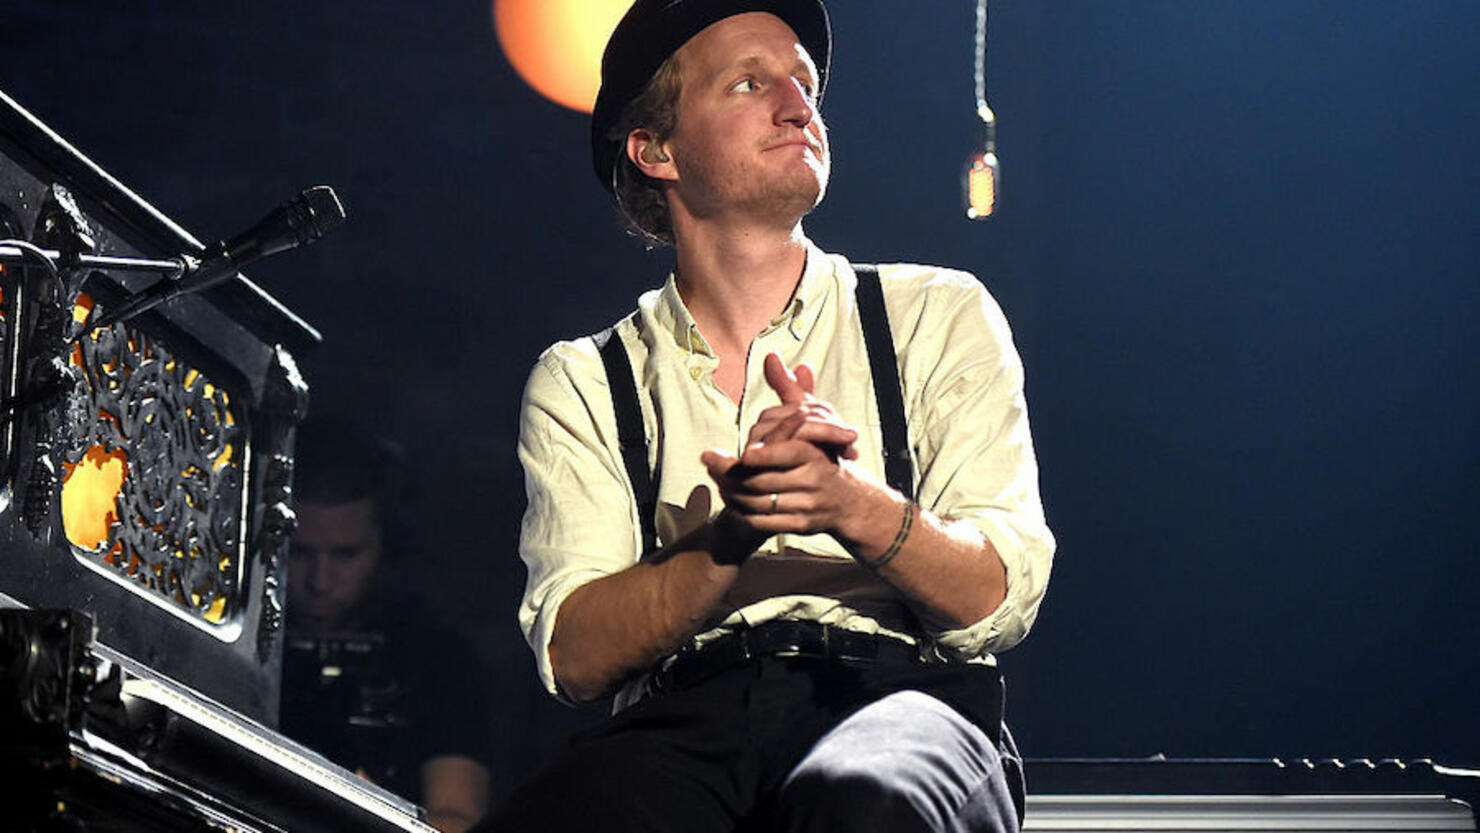 The Lumineers On AT&T LIVE At The iHeartRadio Theater Los Angeles